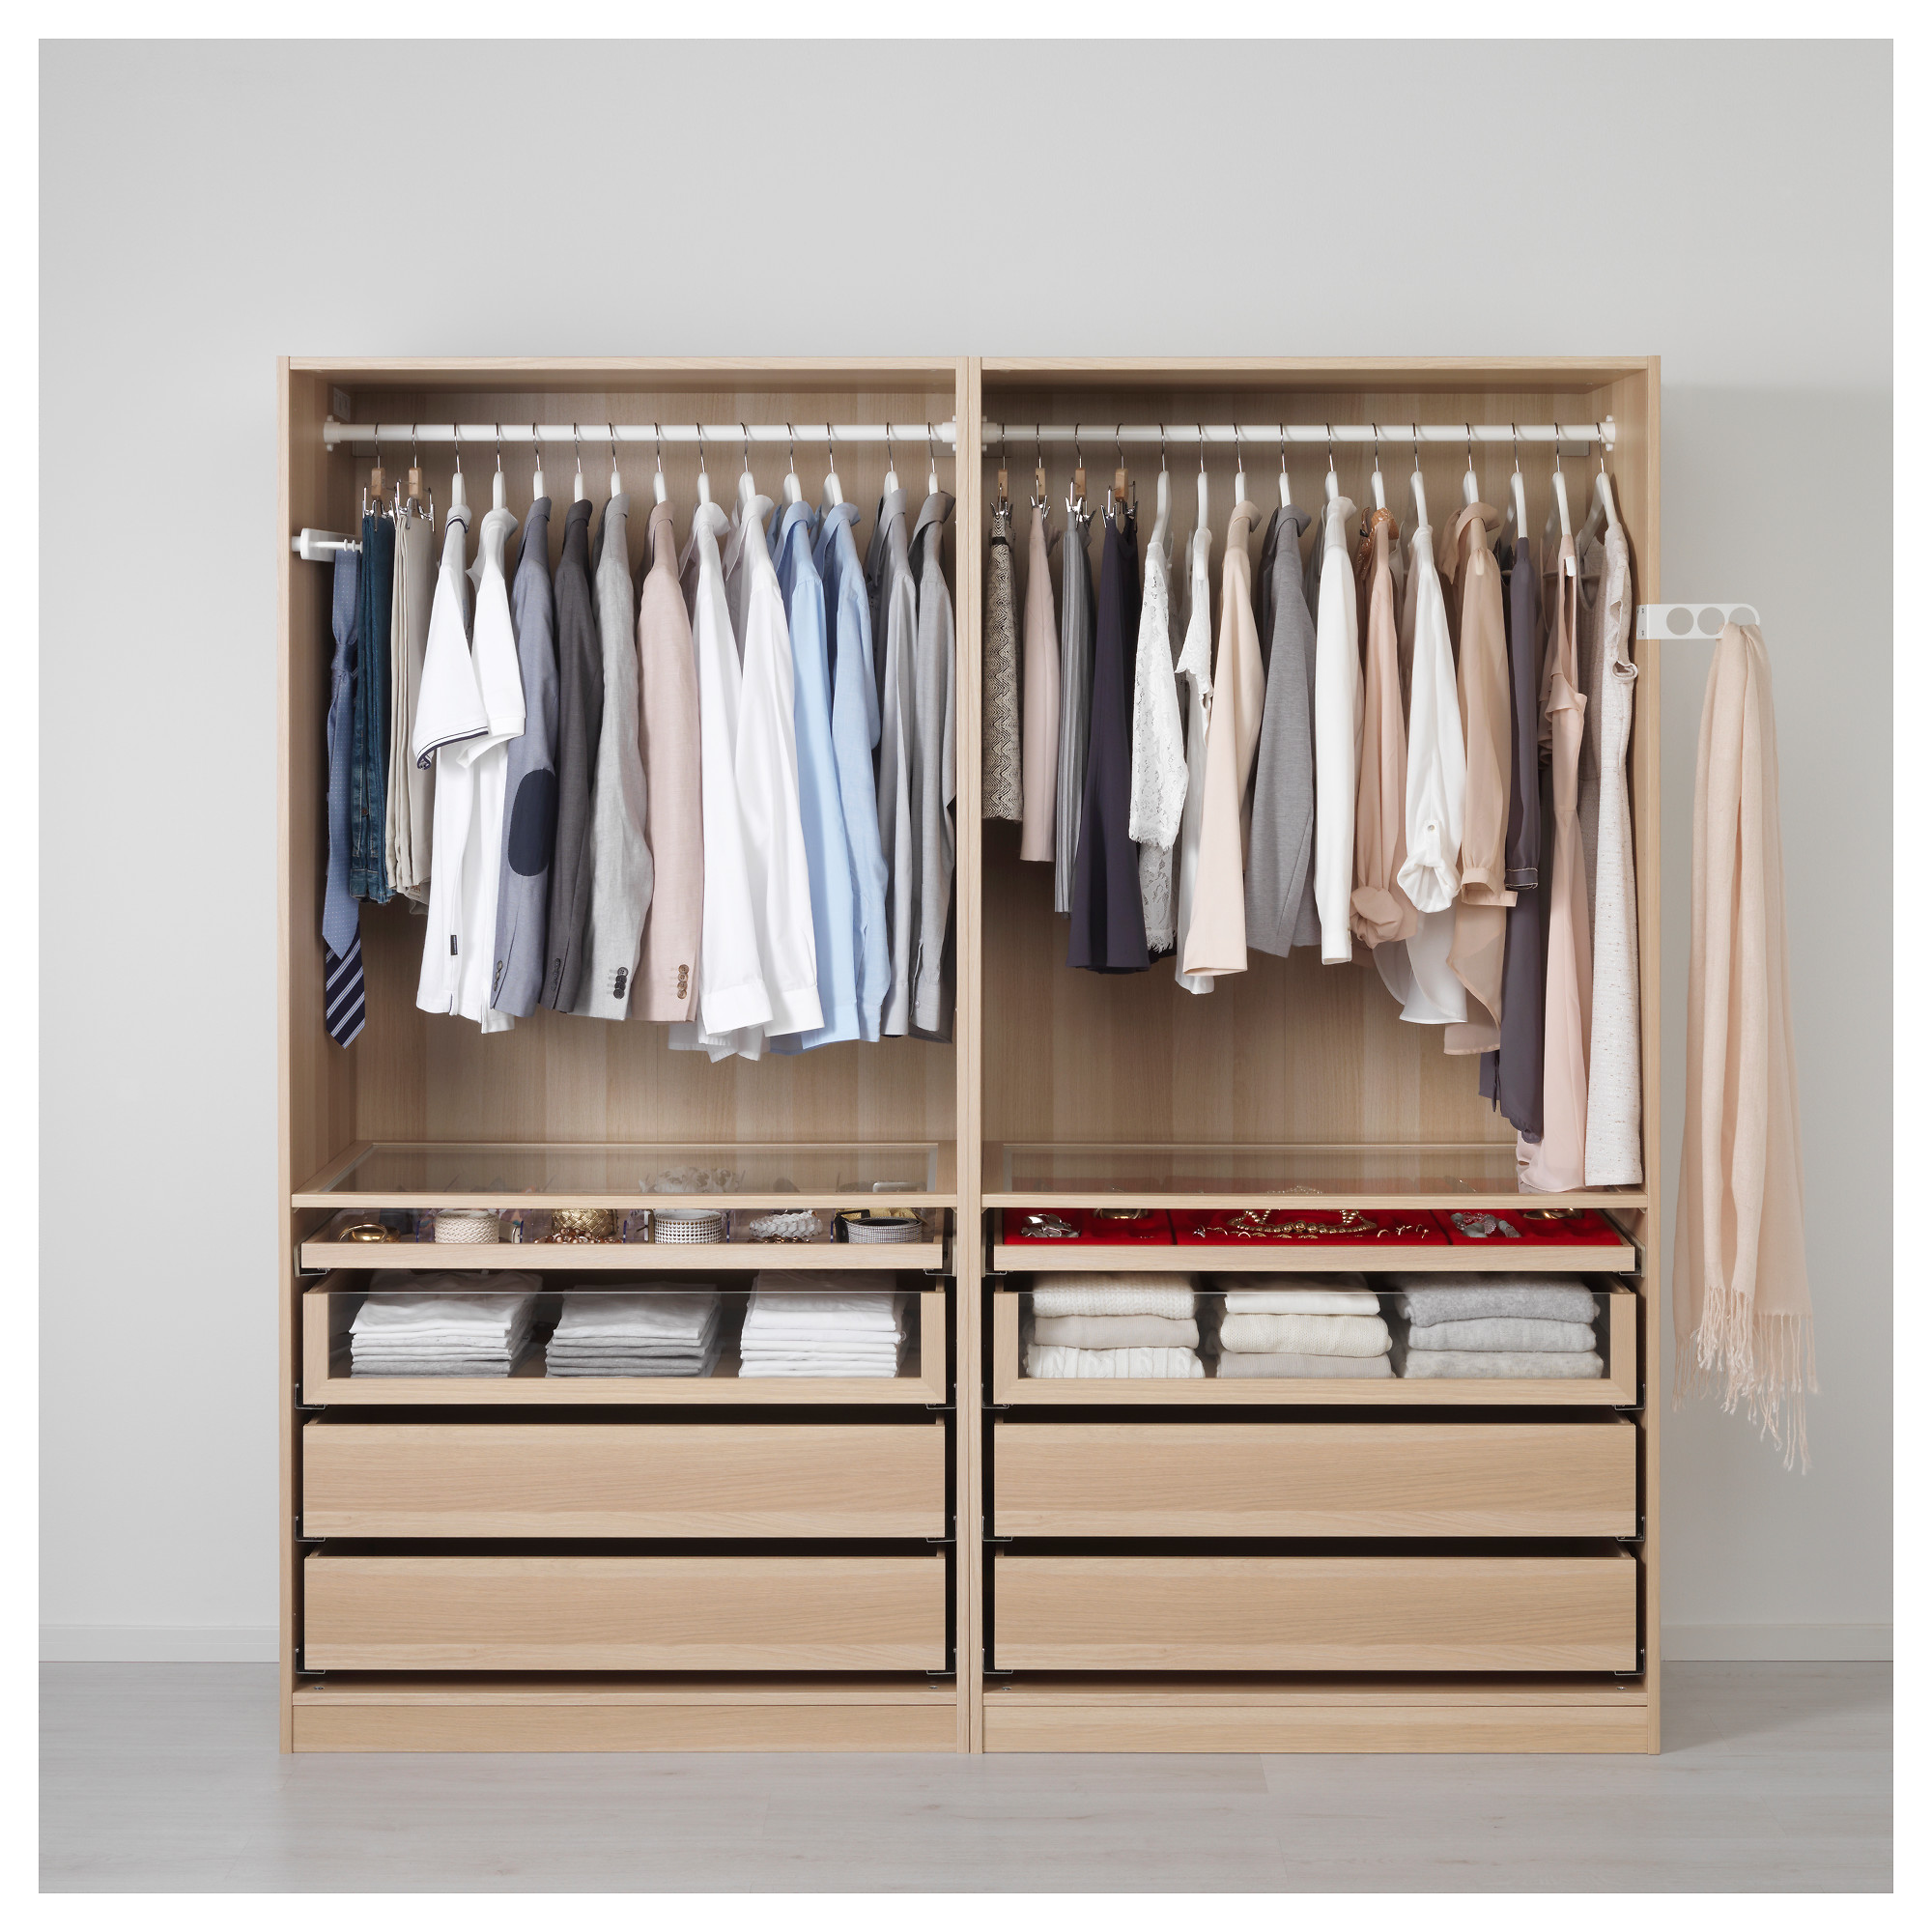 Ikea Closets Pax | Ikea Wardrobe | Mirrored Wardrobe Ikea